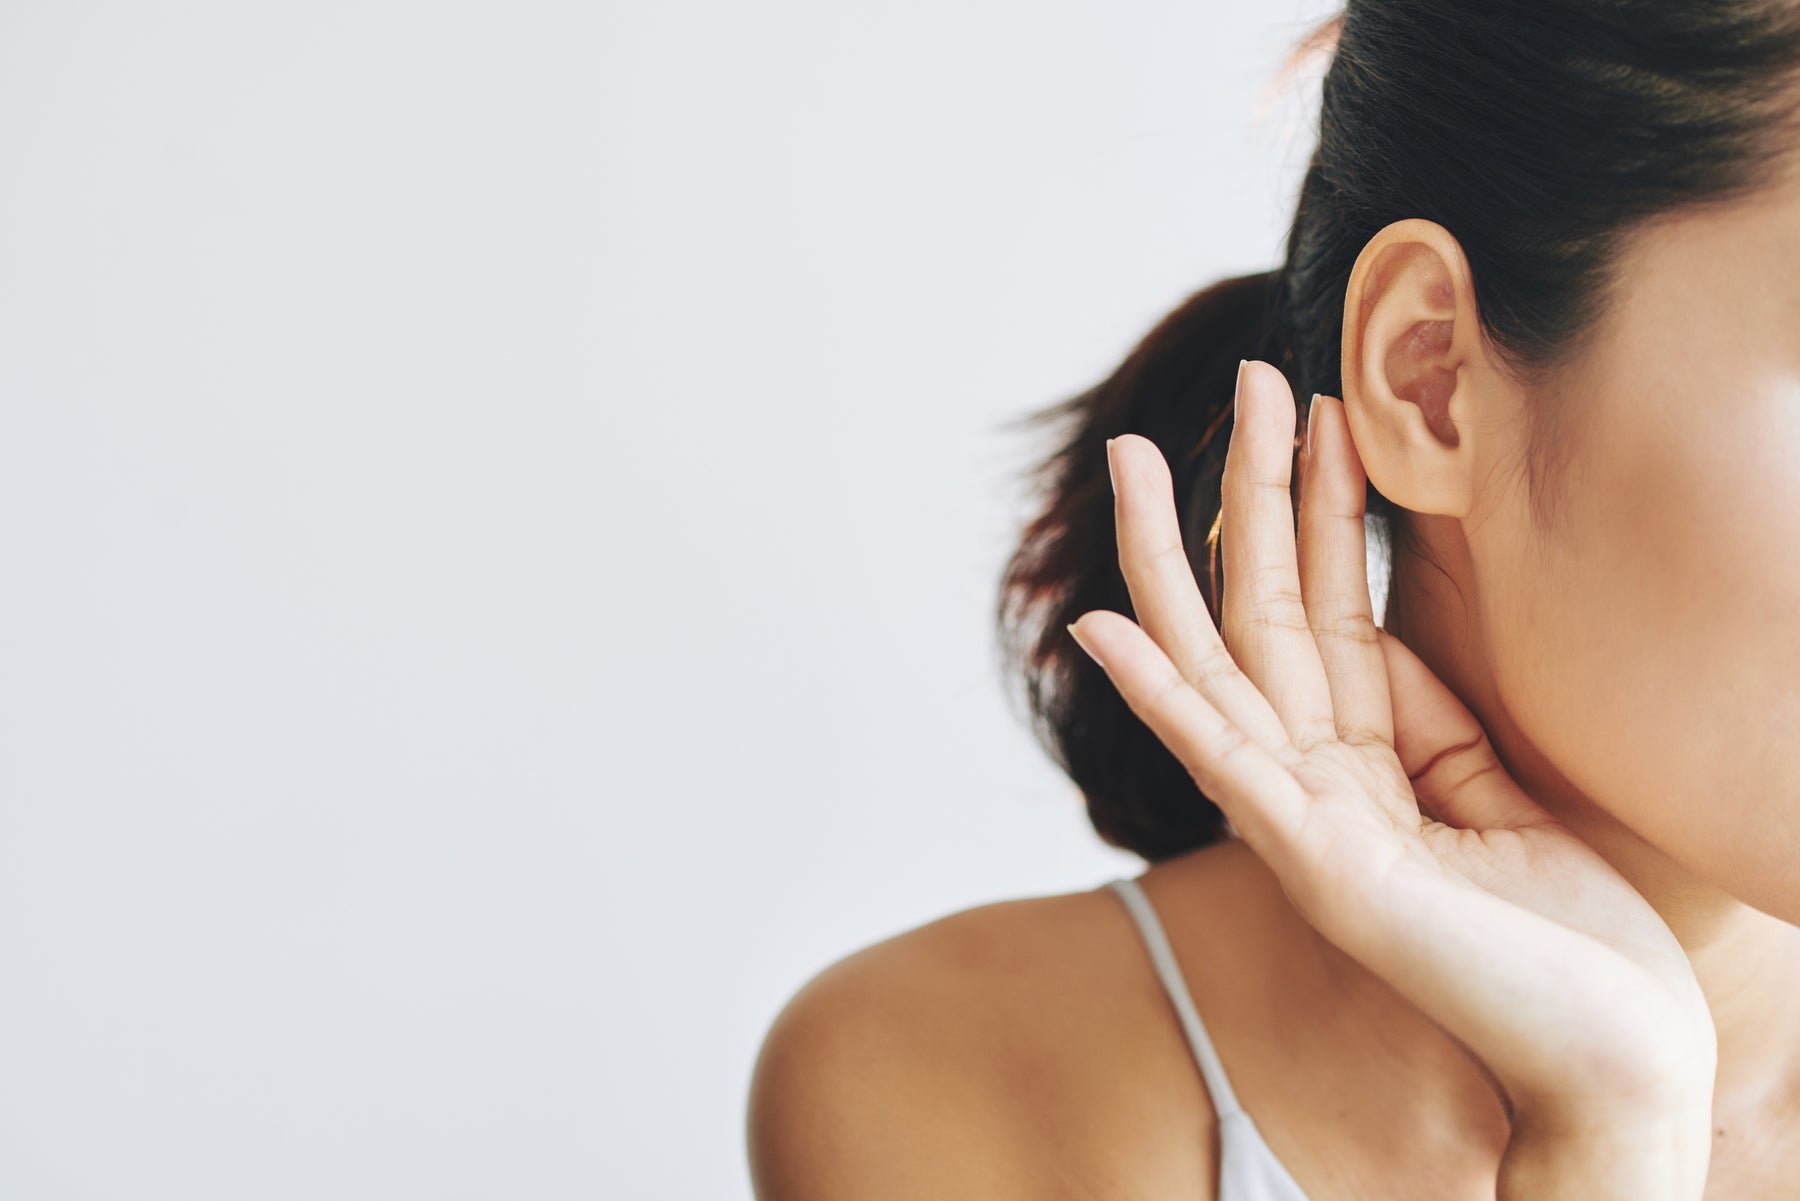 Ear care do's and don'ts